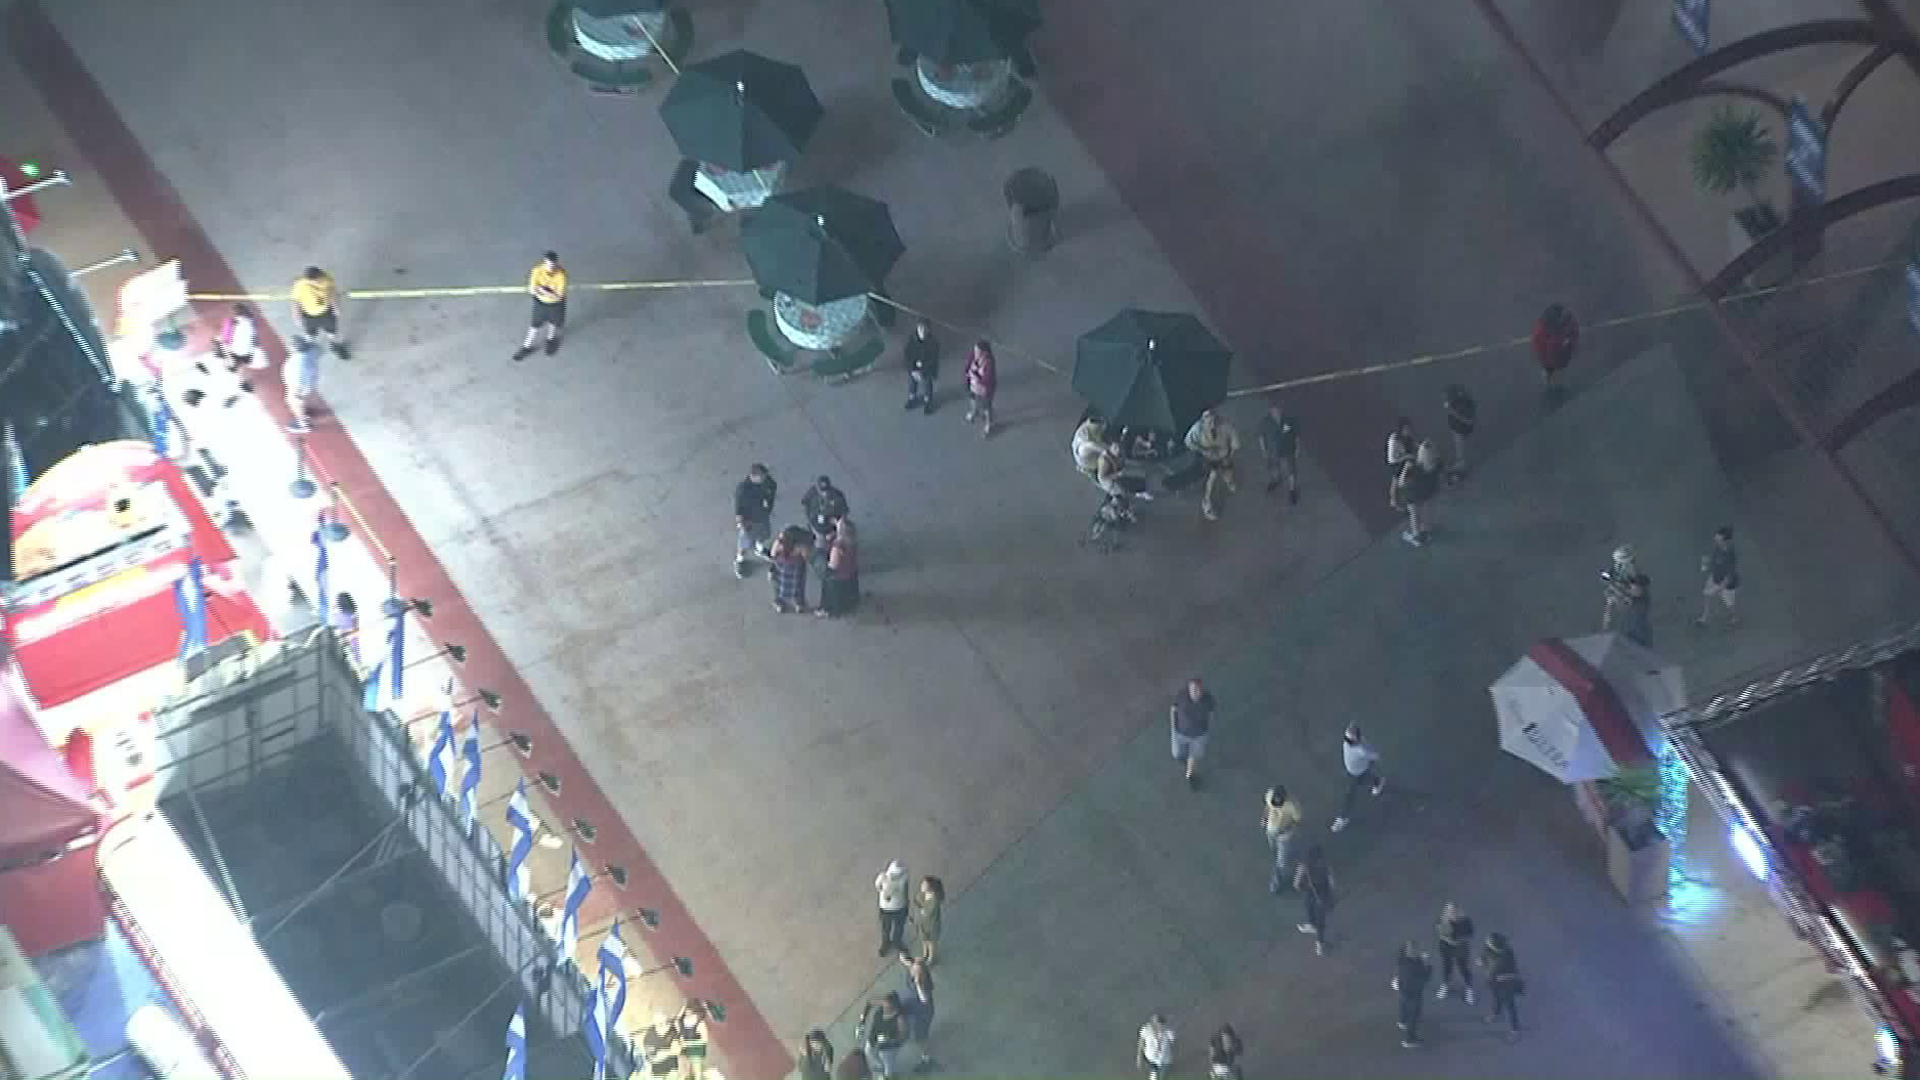 Security personnel and clusters of fairgoers gather around the scene of a fight at the Orange County Fair on July 31, 2019. (Credit: Sky5)